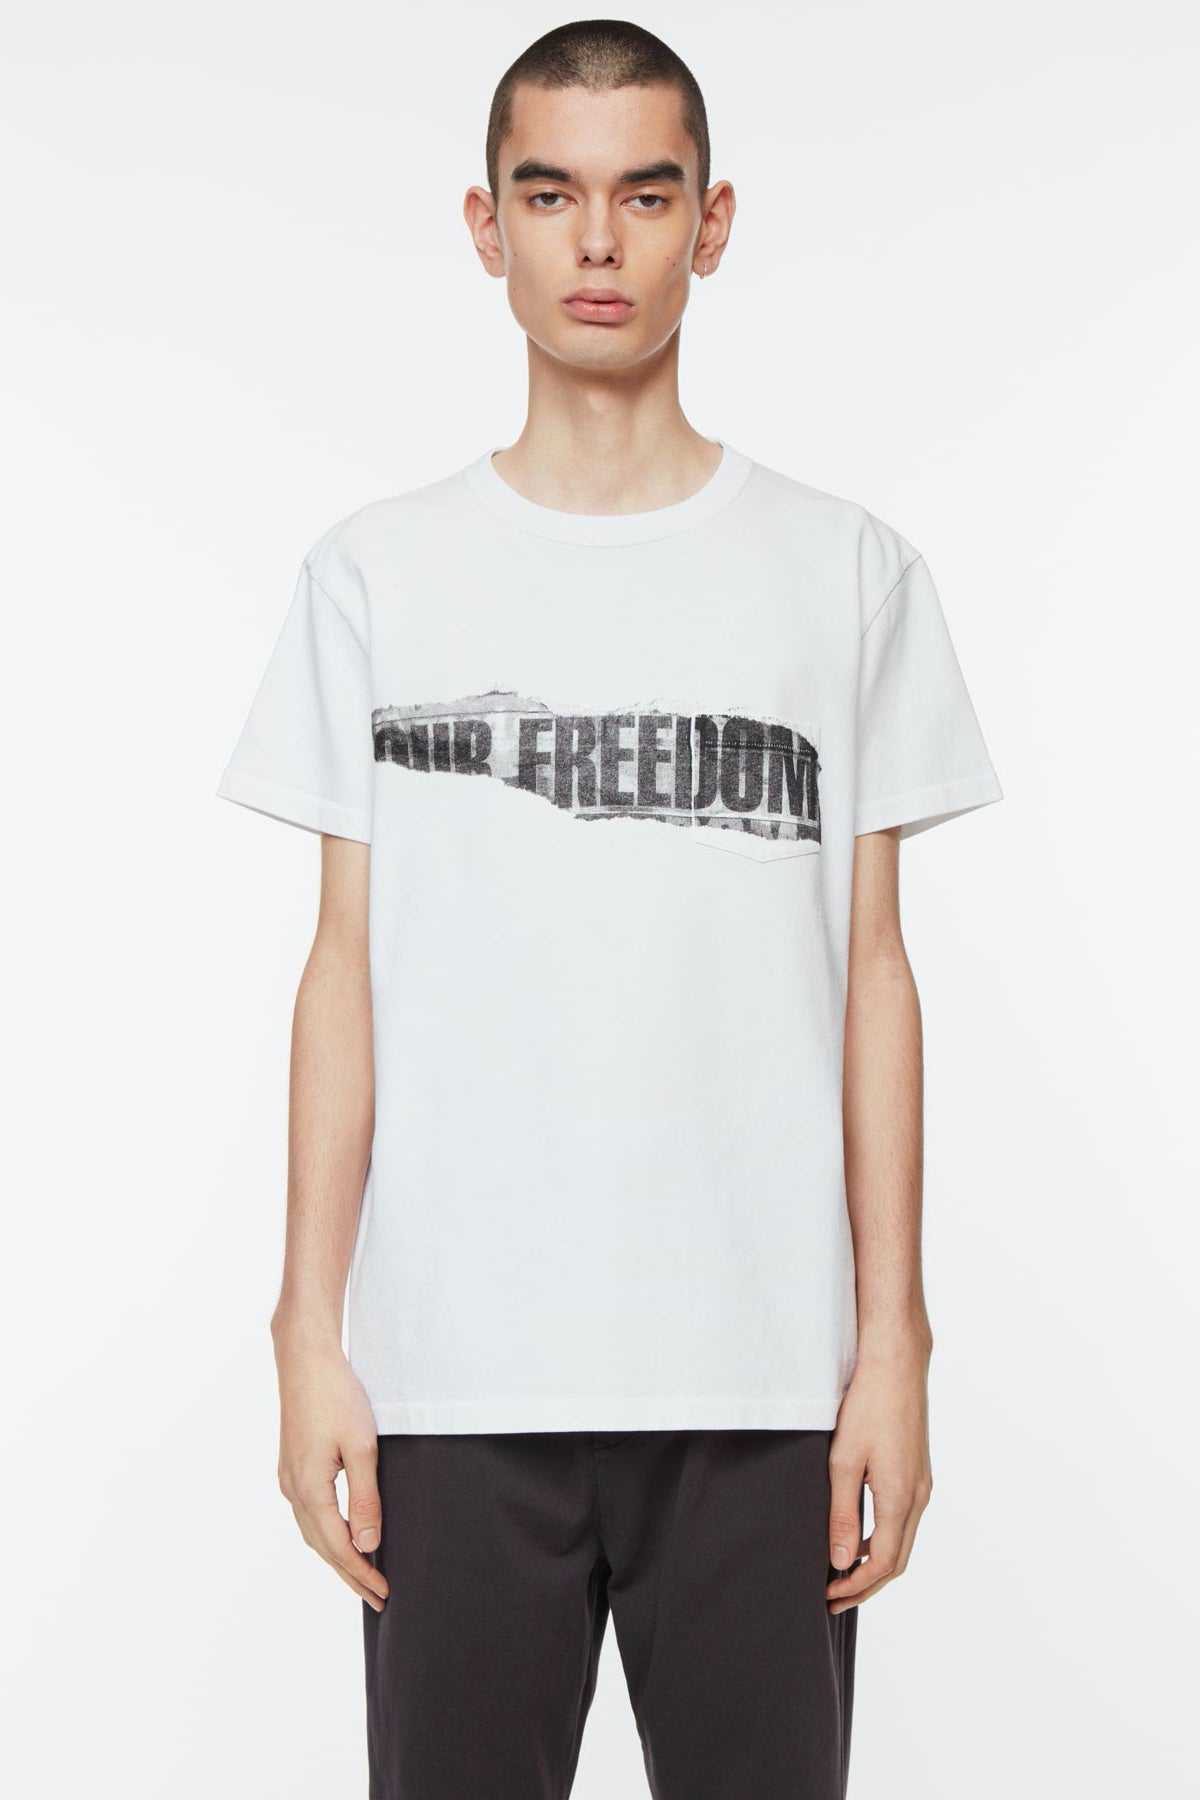 T-shirt freedom print white